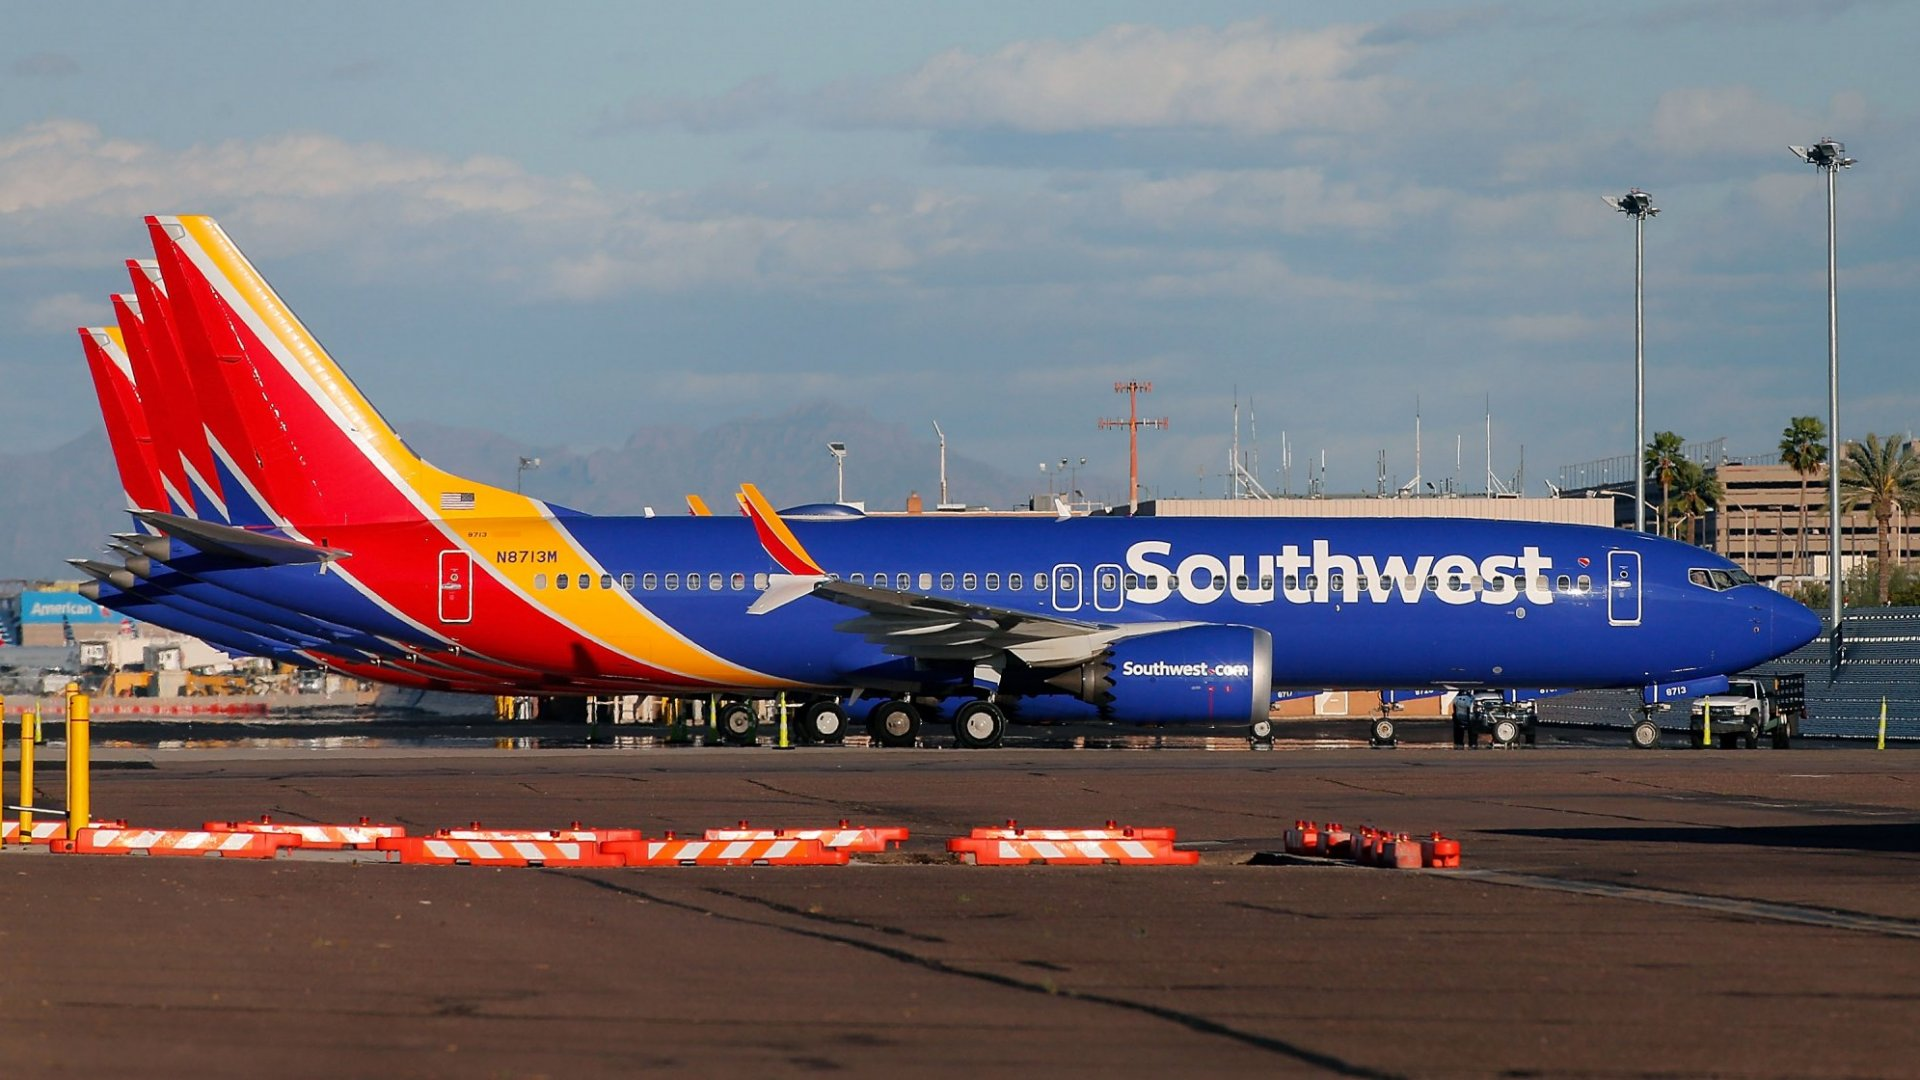 The CEO of Southwest Airlines Just Issued an Extraordinary Statement About the Company's Boeing 737 MAX Aircraft